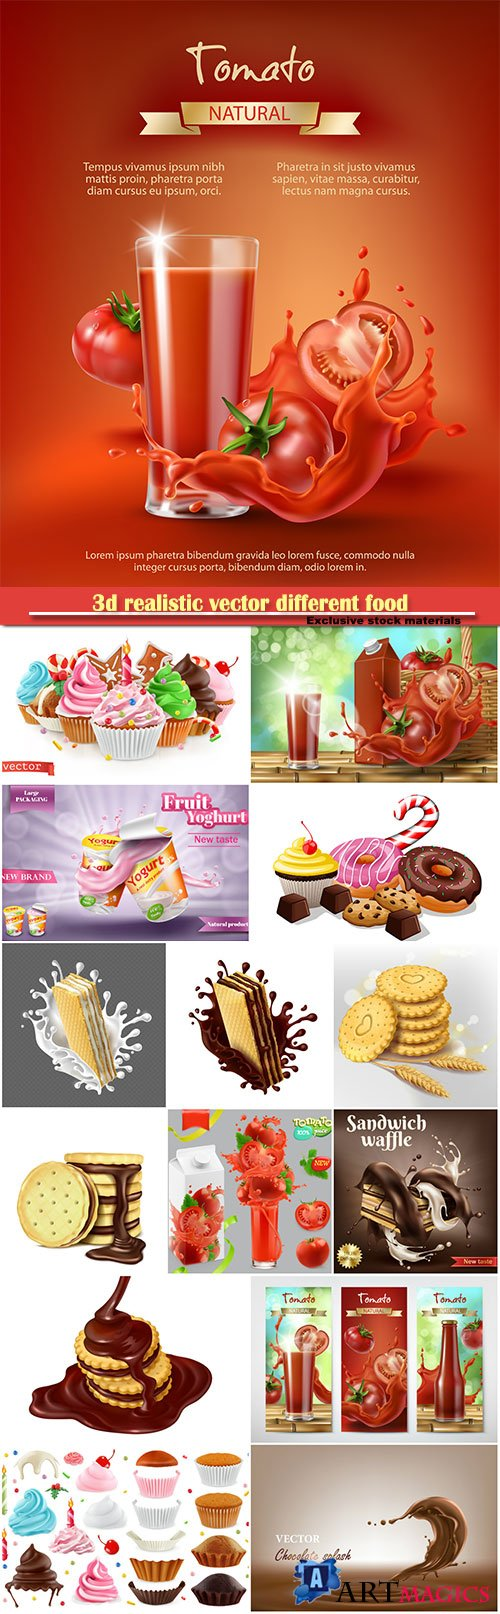 3d realistic vector different food, sweet dessert, cake, cupcake, chocolate, juice